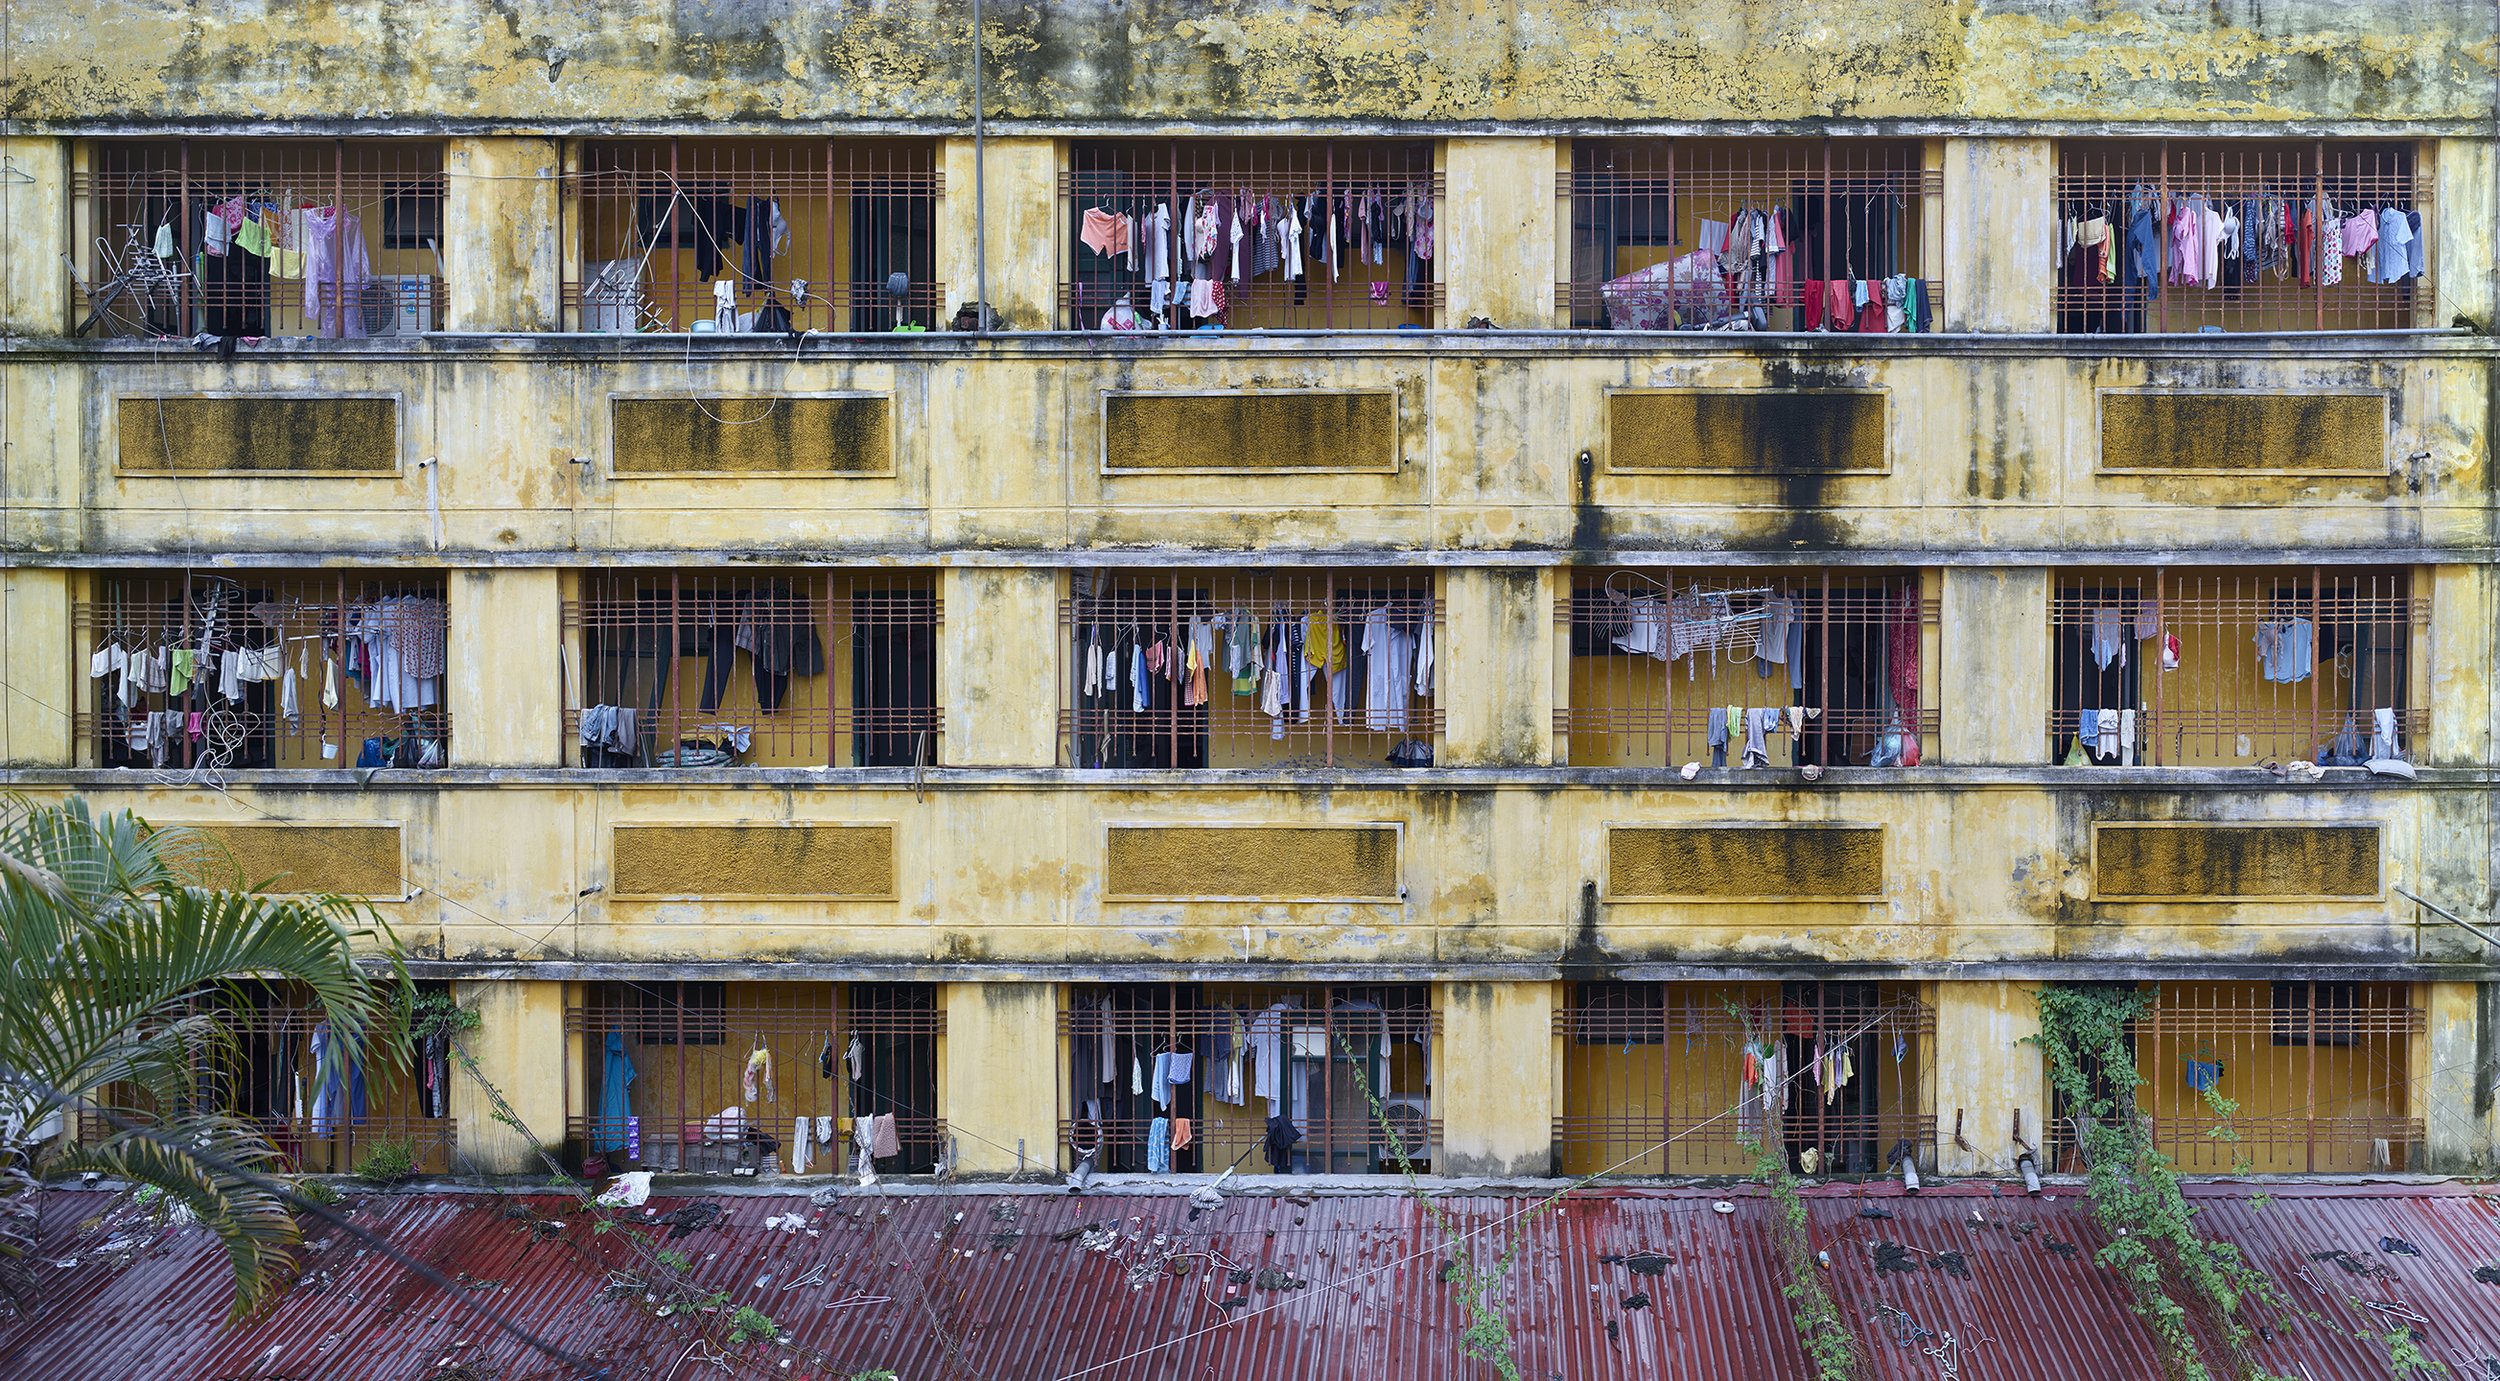 Medical School Dorms, Kim Lien, Hanoi - 2016.jpg